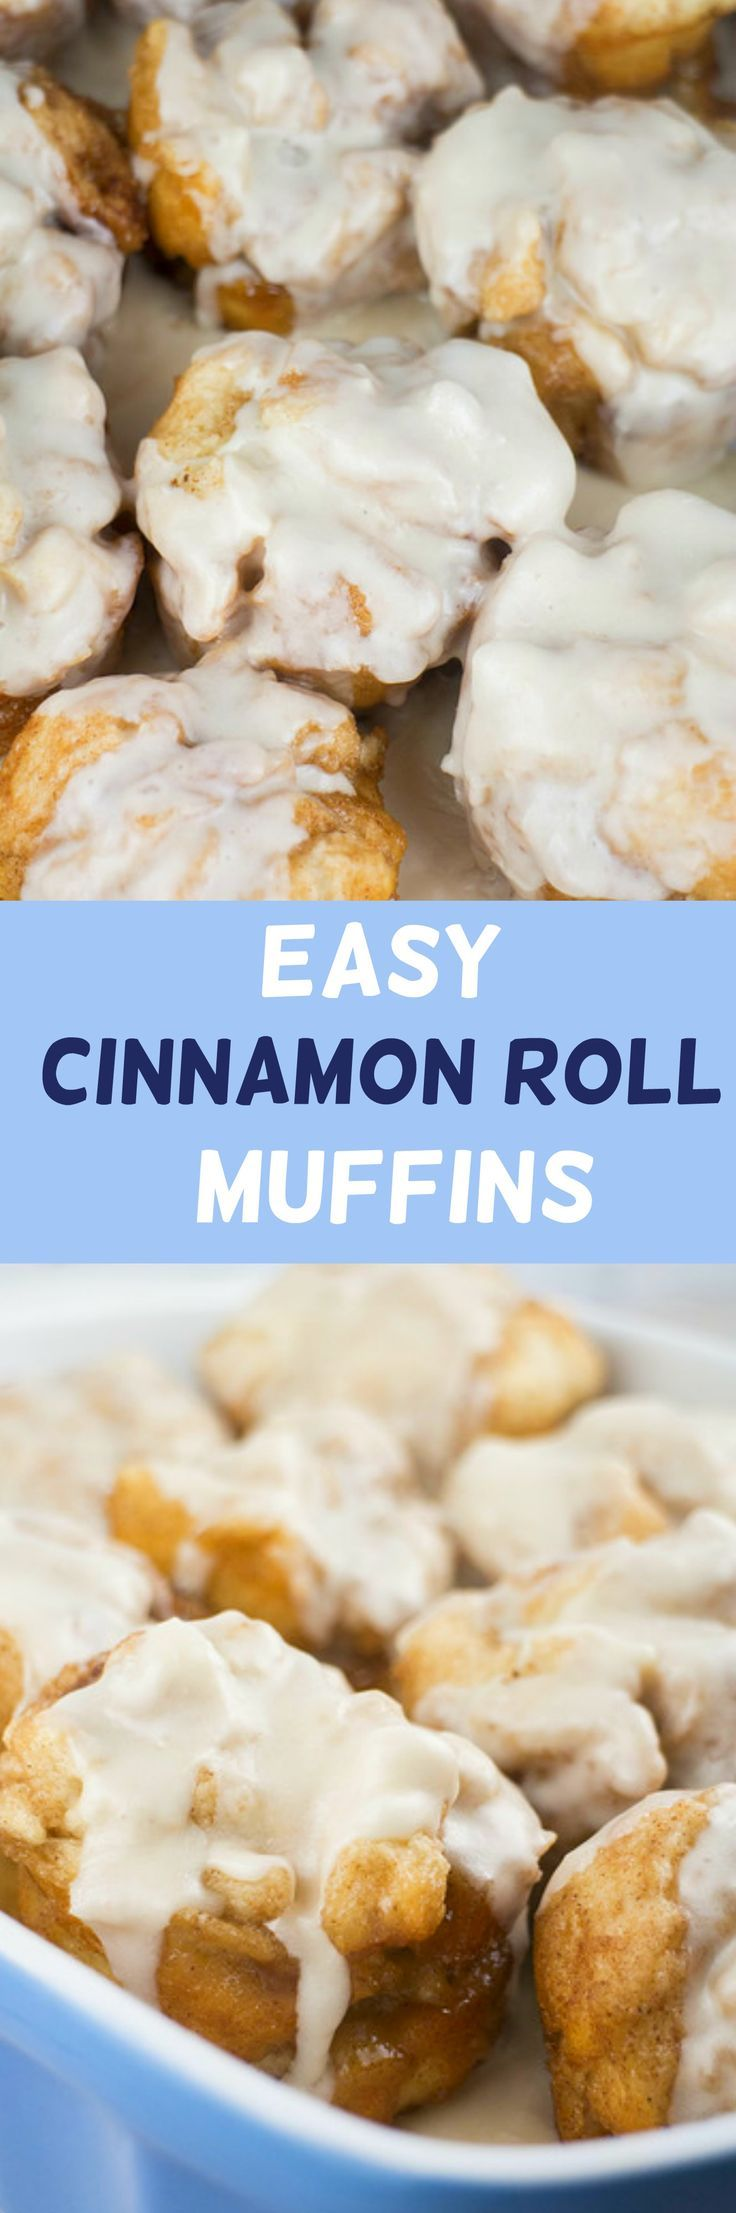 Easy Cinnamon Roll Muffins made ready in 12 minutes! Use refrigerated biscuits to make homemade Cinnamon Rolls with a powdered sugar icing that your kids will fall in love with! These Cinnamon Rolls are quick and delicious - perfect for Saturday morning breakfast